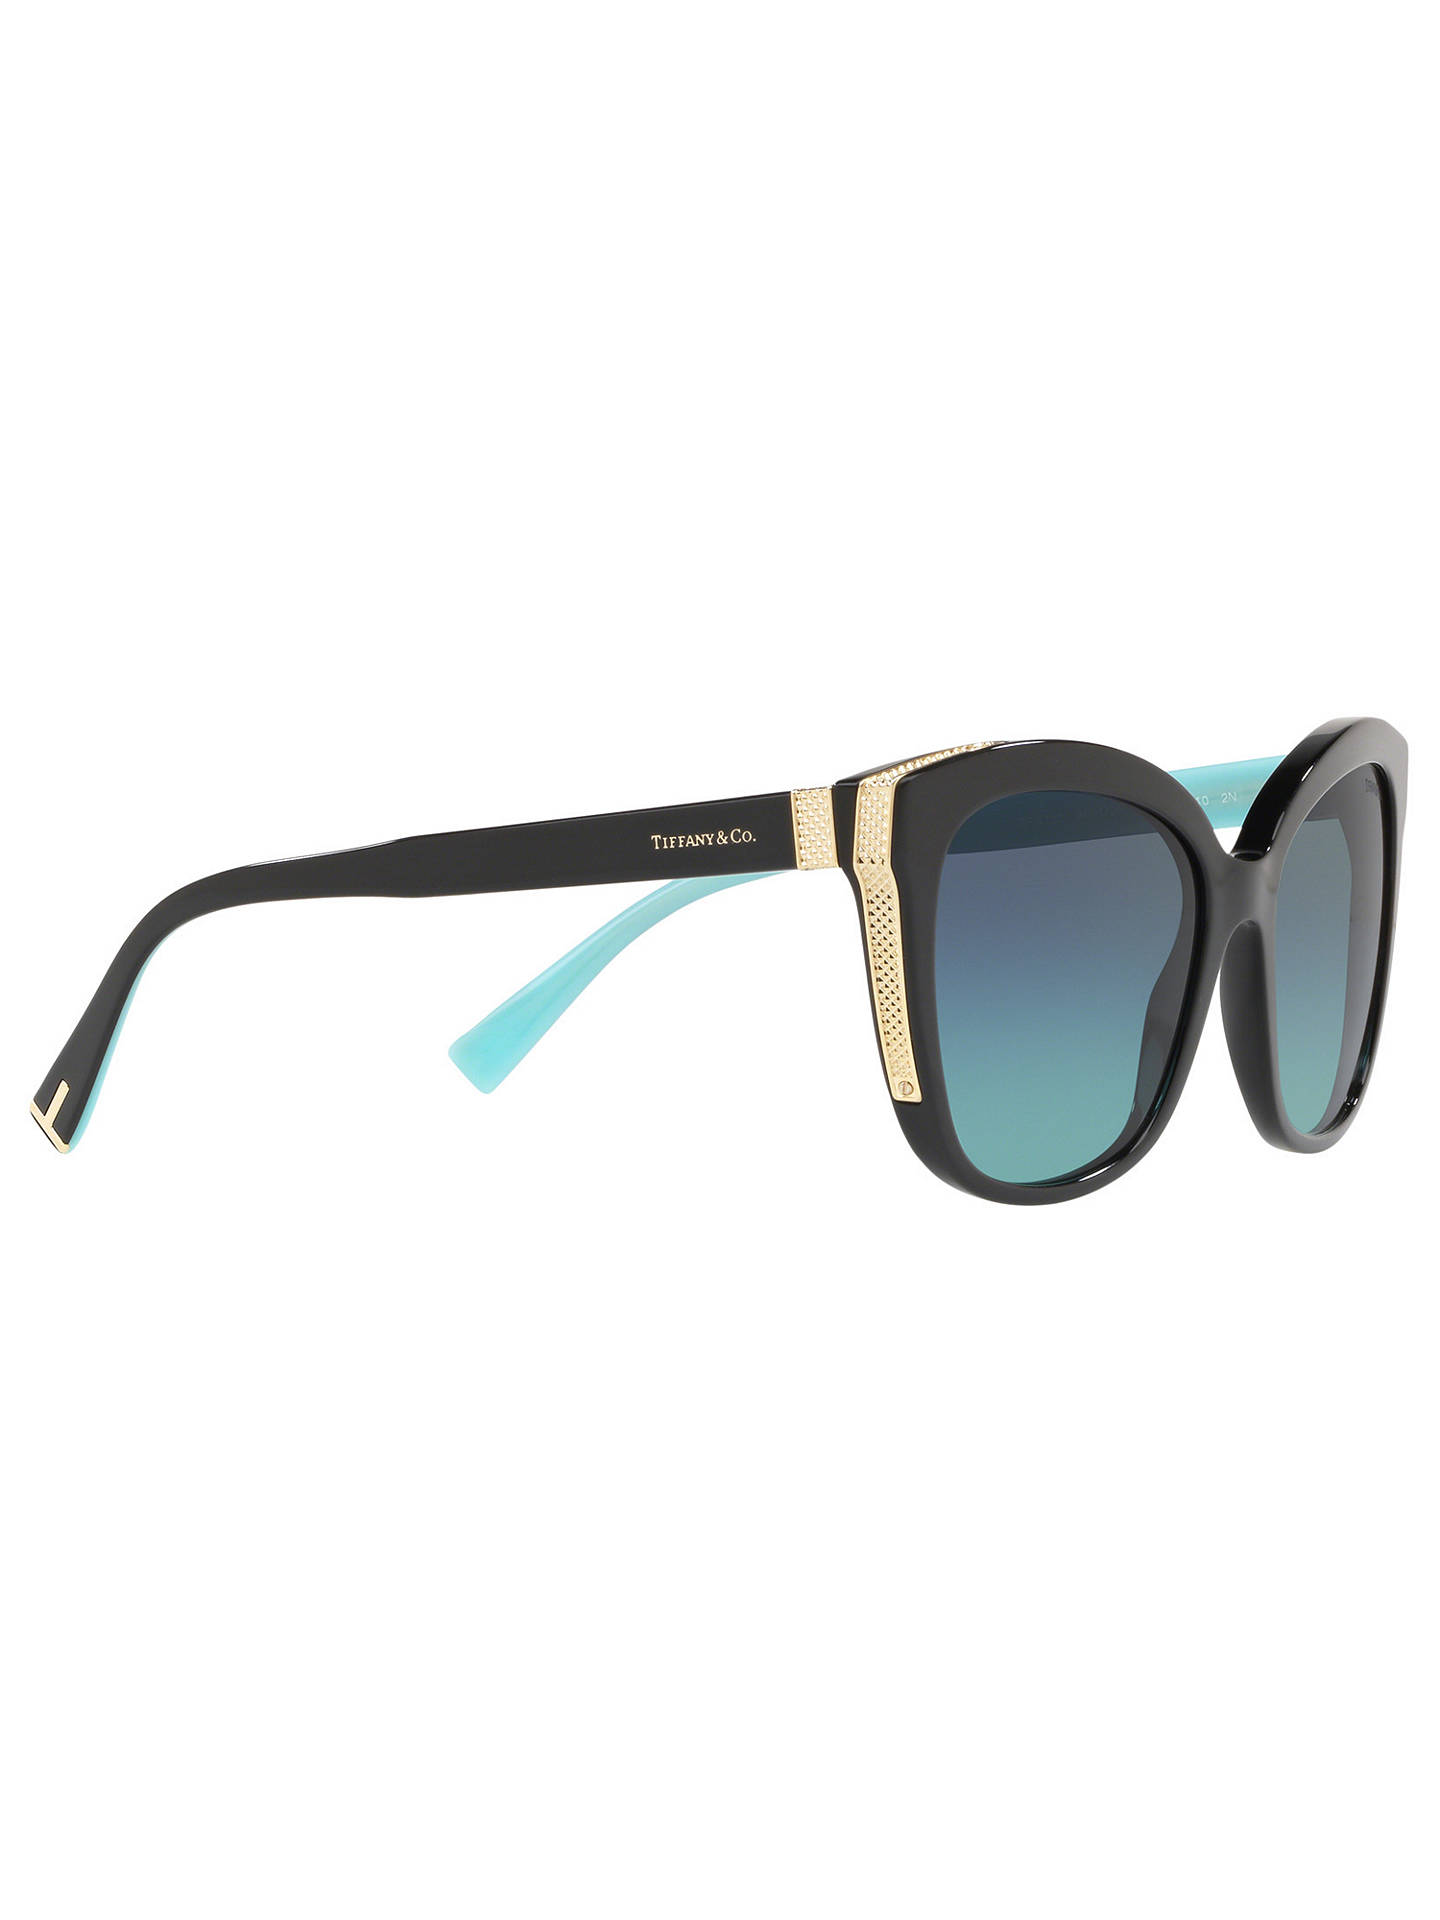 0005dcee027 ... Buy Tiffany   Co TF4150 Women s Embellished Square Sunglasses